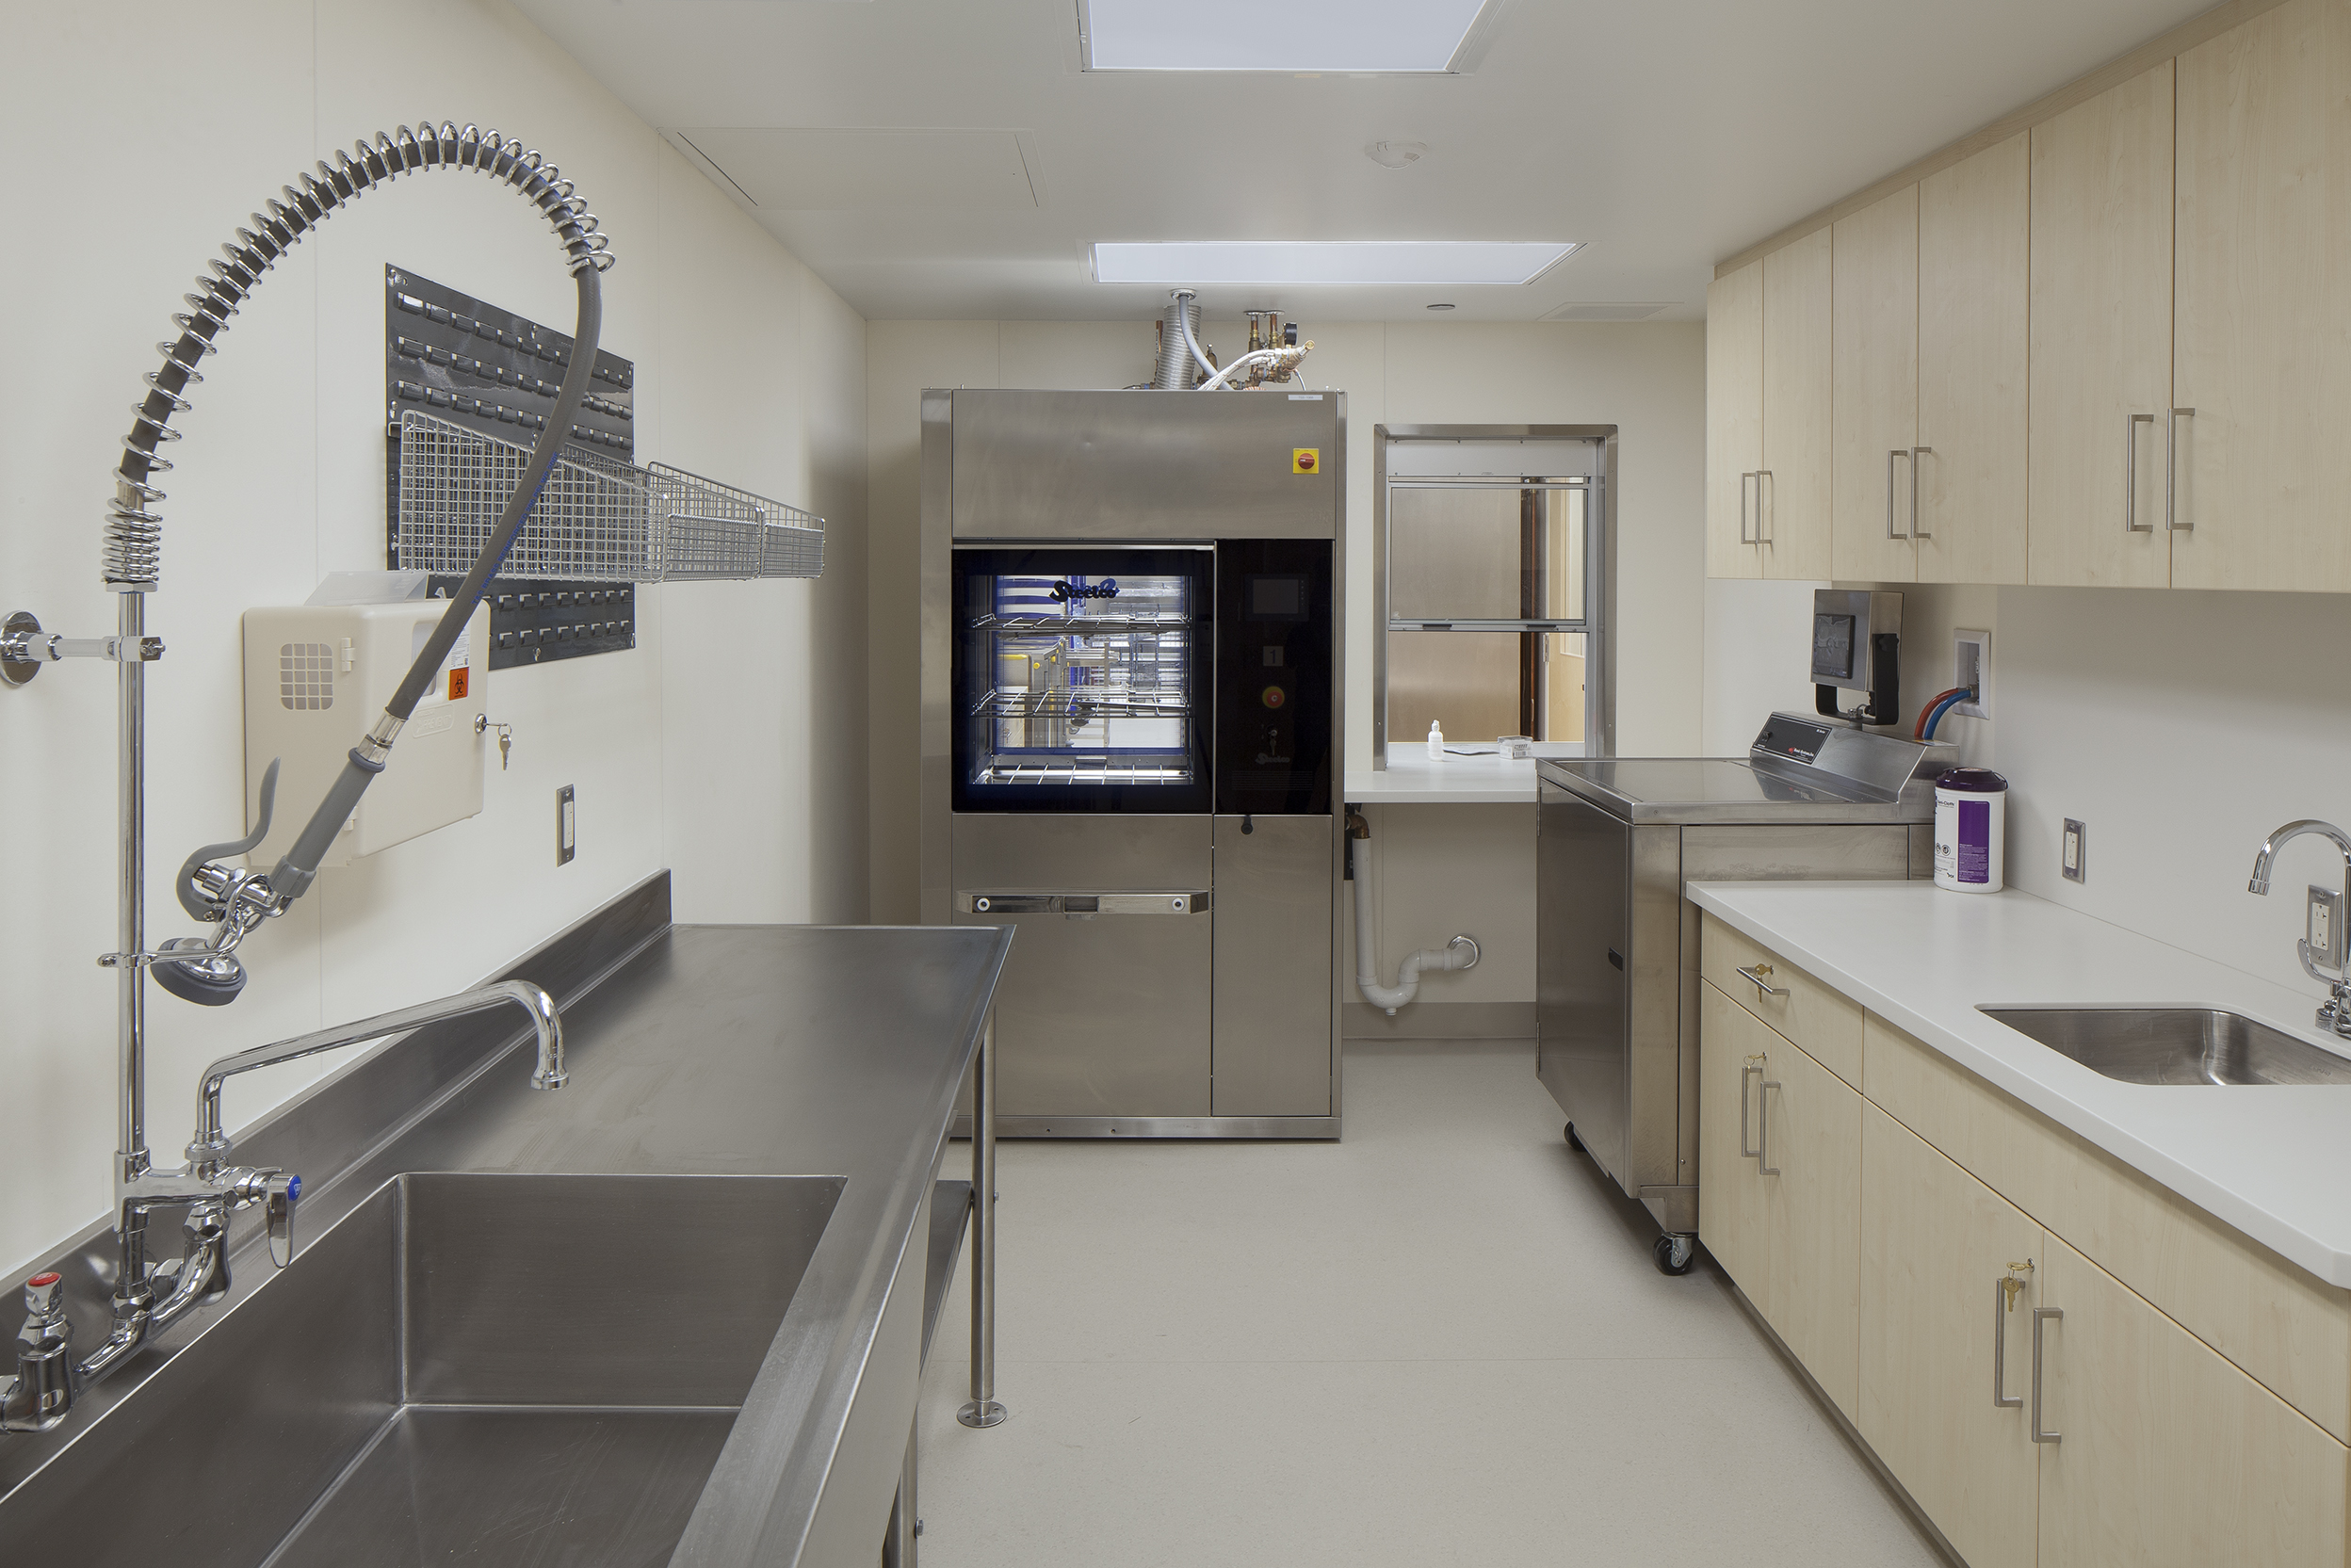 First floor sterilization room